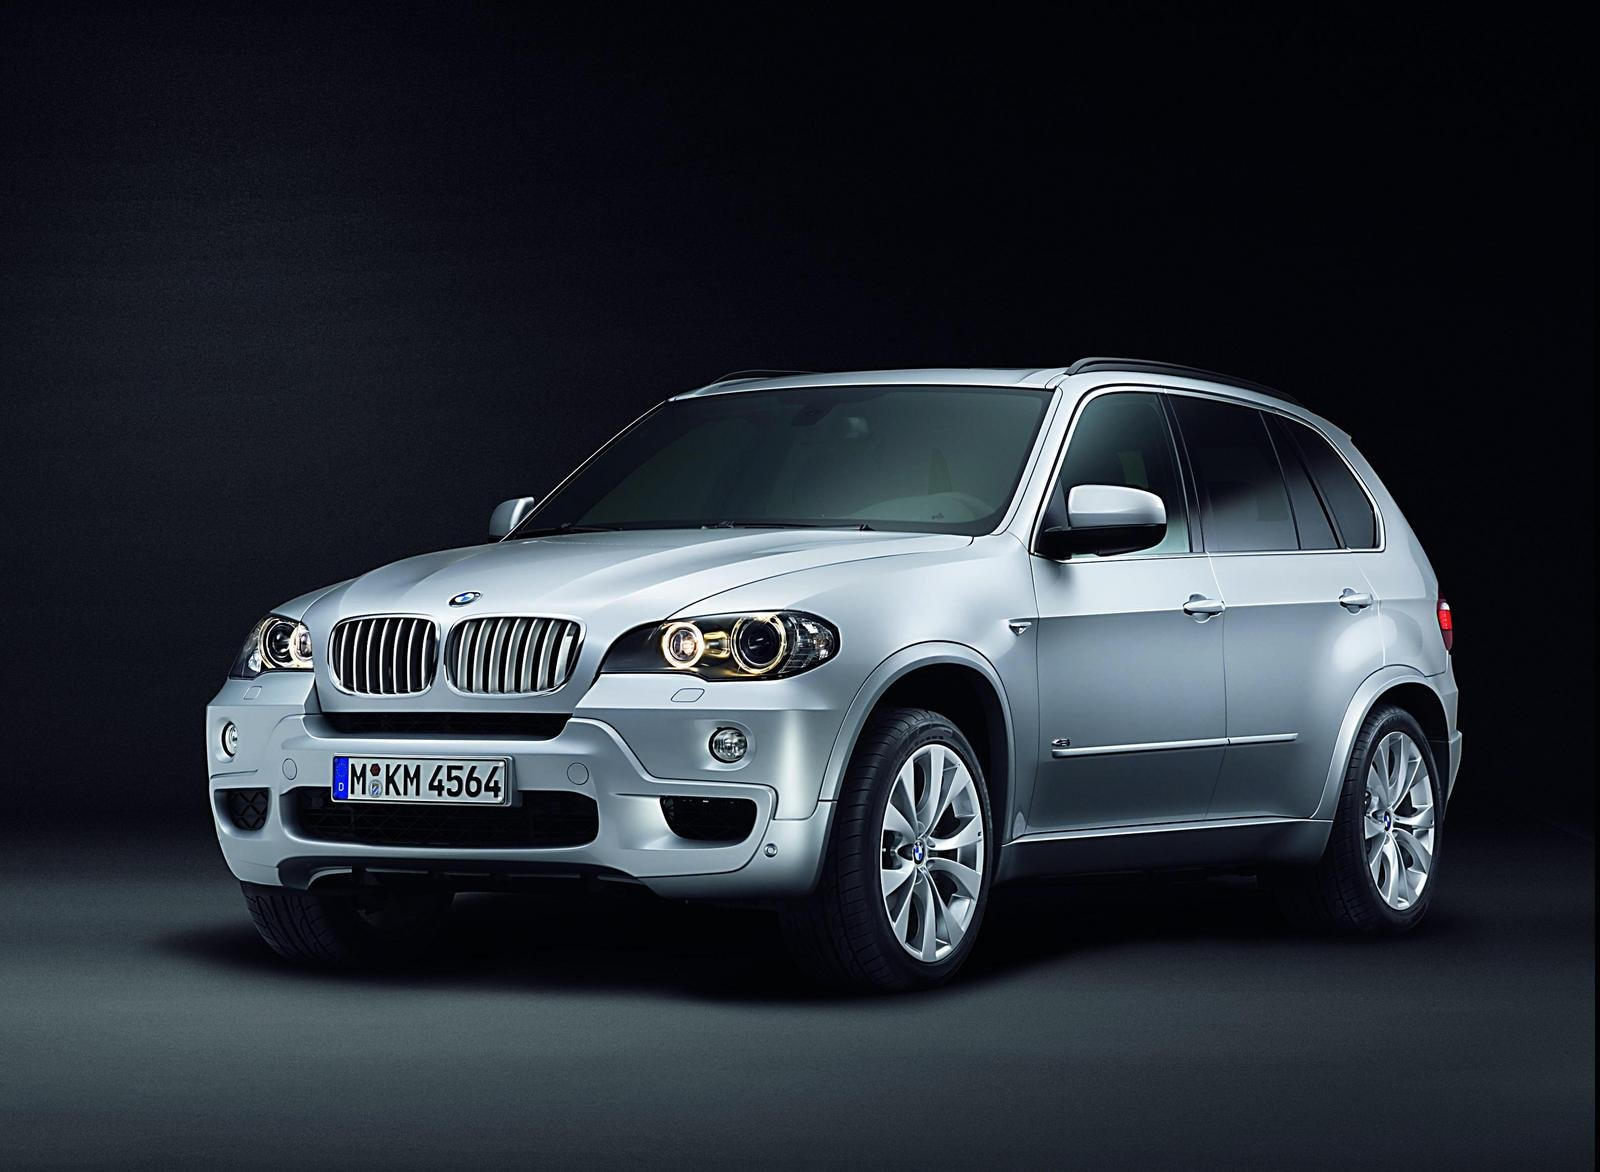 2007 bmw x5 m sport package picture 174266 car review top speed. Black Bedroom Furniture Sets. Home Design Ideas